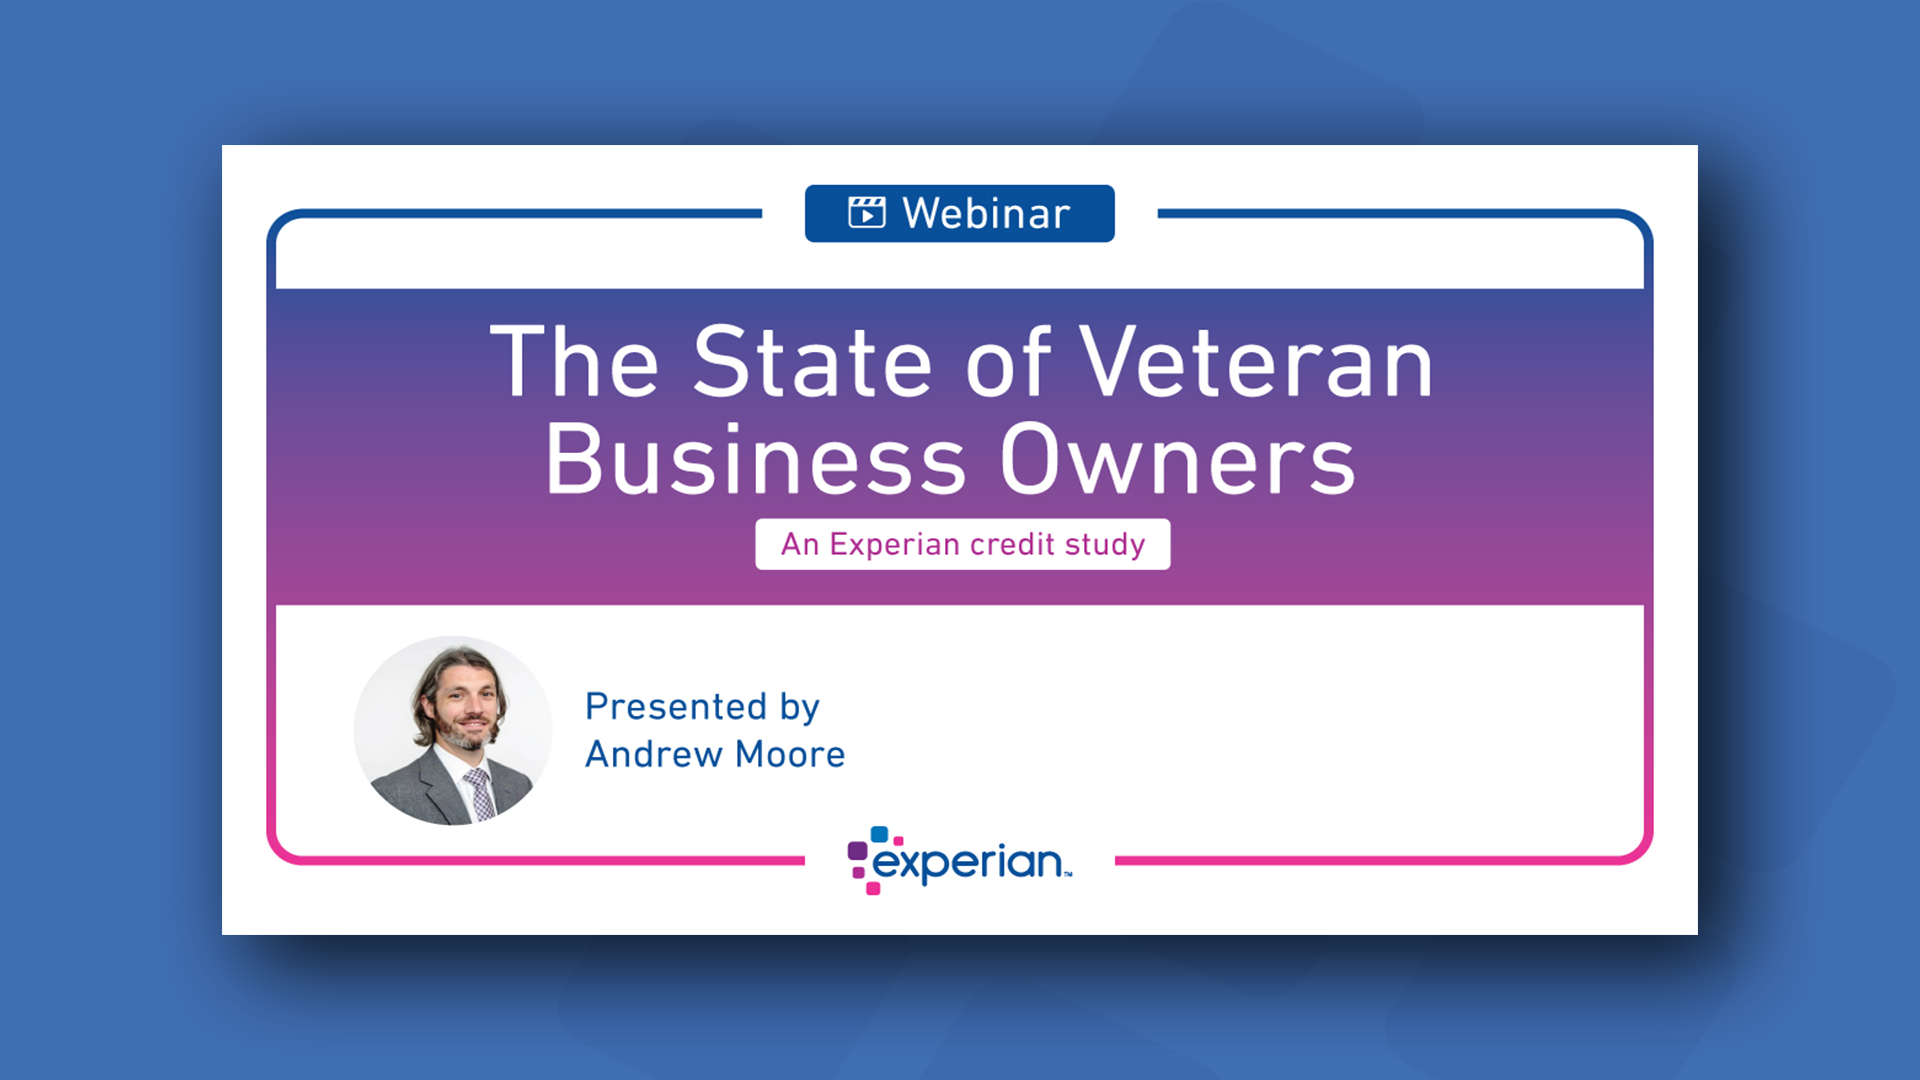 data-study-veteran-business-owners-promo-captions